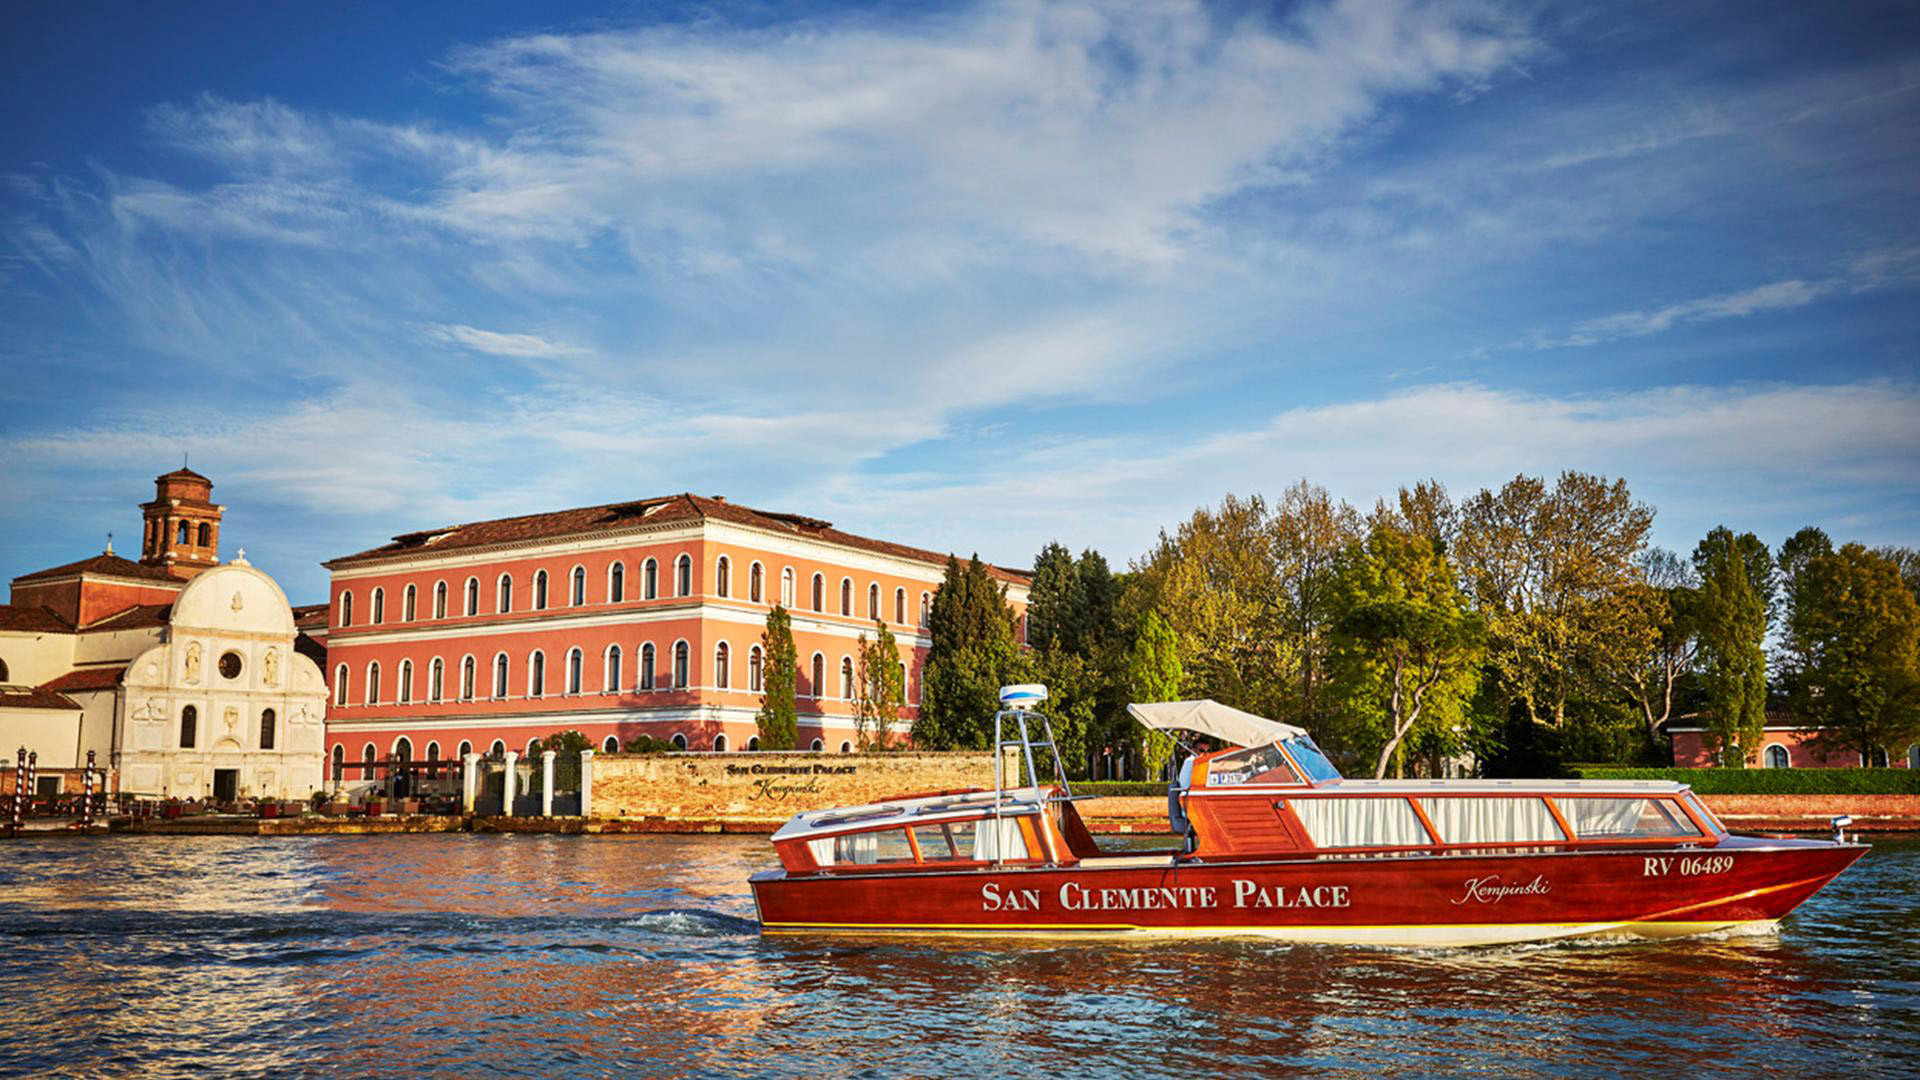 Hotels Italy Luxury Travel Venice outdoor sky water Boat vehicle River waterway vacation Canal Sea evening boating reflection traveling